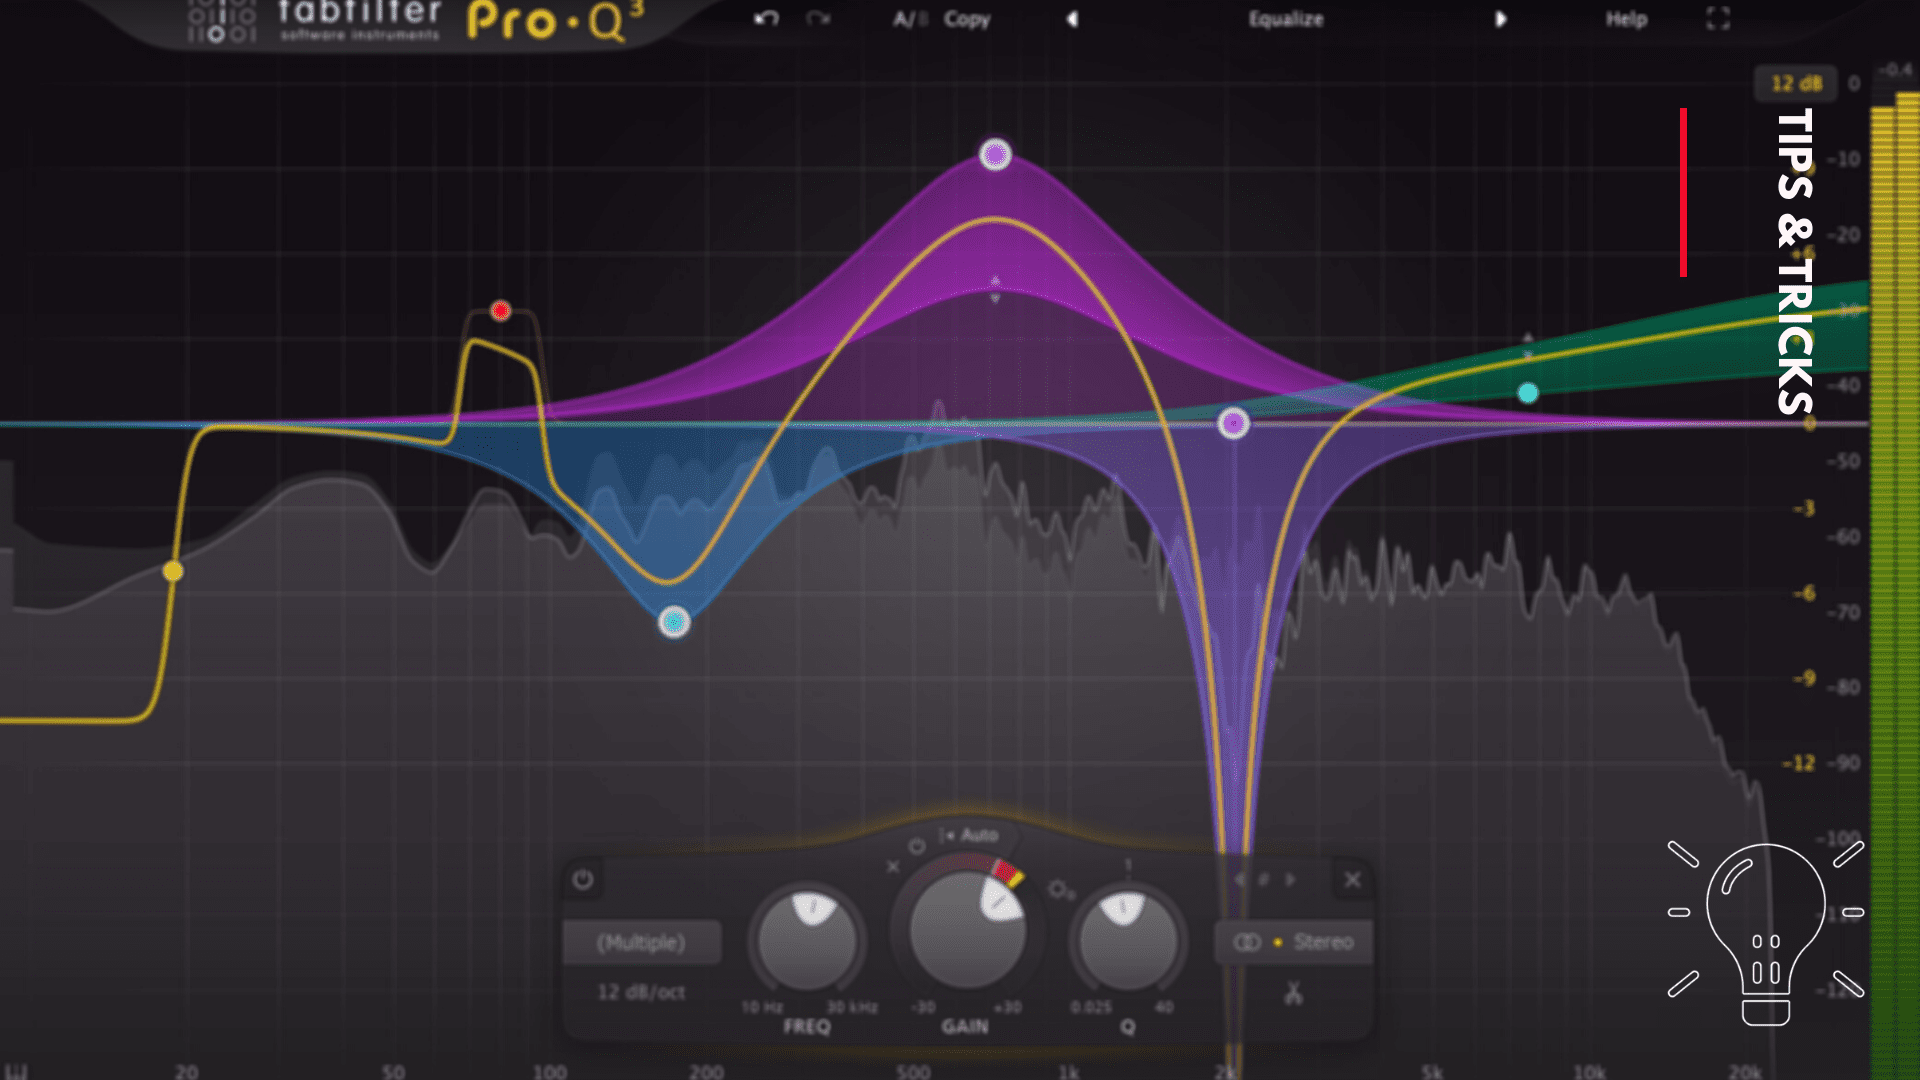 10 most useful features of the fabfilter pro q3